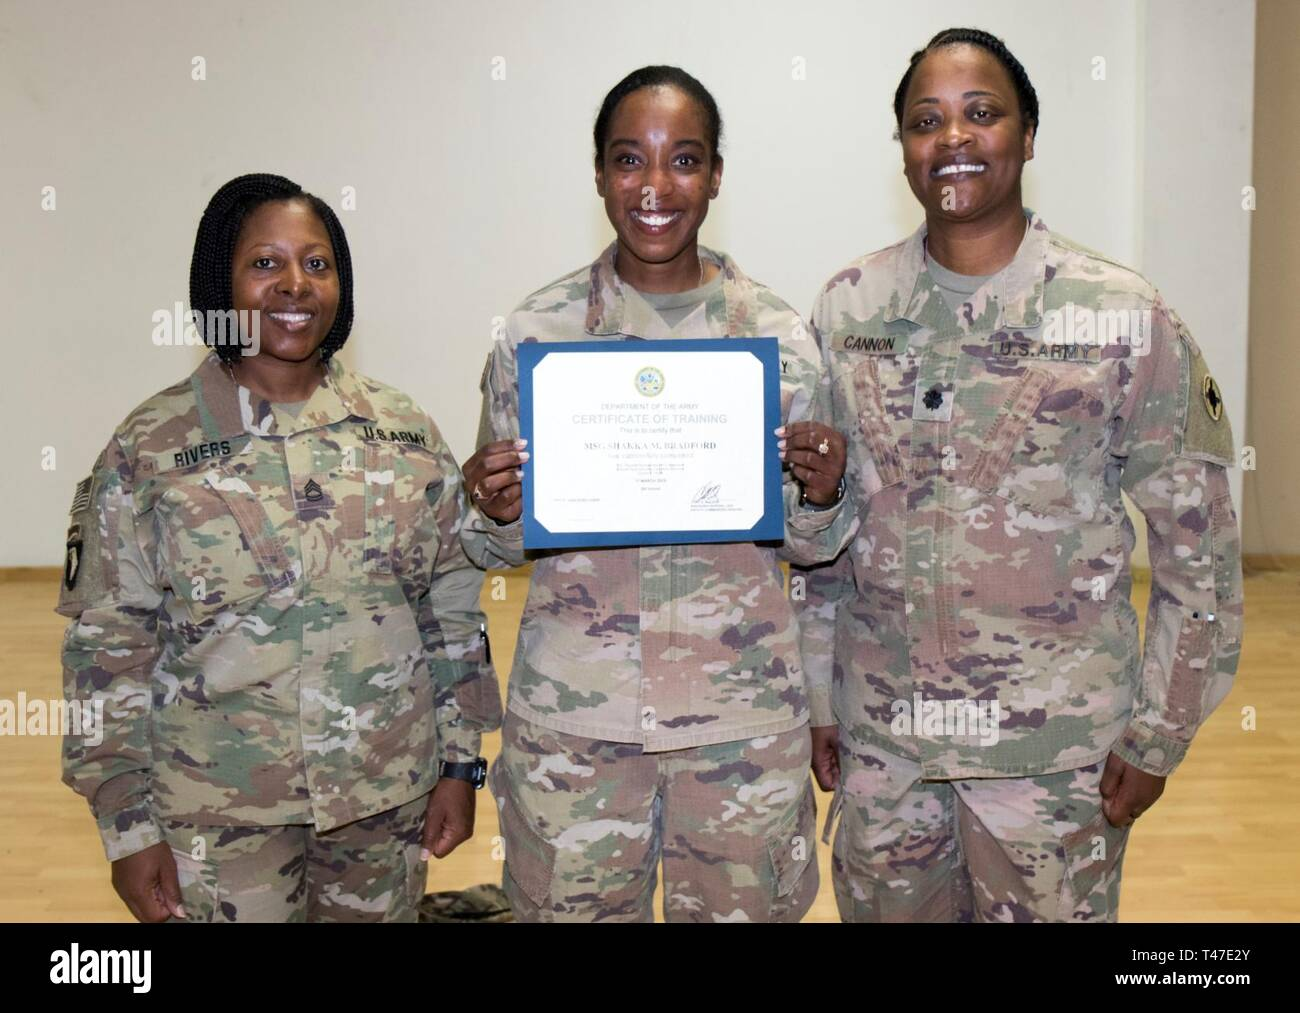 U.S. Army Sgt. 1st Class Tara Rivers, Equal Opportunity Advisor and instructor, 1st Theater Sustainment Command, right, poses with Master Sgt. Shakka Bradford, HHC supply noncommissioned officer in charge 335th Signal Command (Theater) (Provisional), center, and U.S. Army Lt. Col. Laketta Cannon, Assistant Chief of Staff G1 1st Theater Sustainment Command, right, following the Equal Opportunity Leaders Course 19-06 graduation ceremony at Camp Arifjan, Kuwait, March 17, 2019. - Stock Image